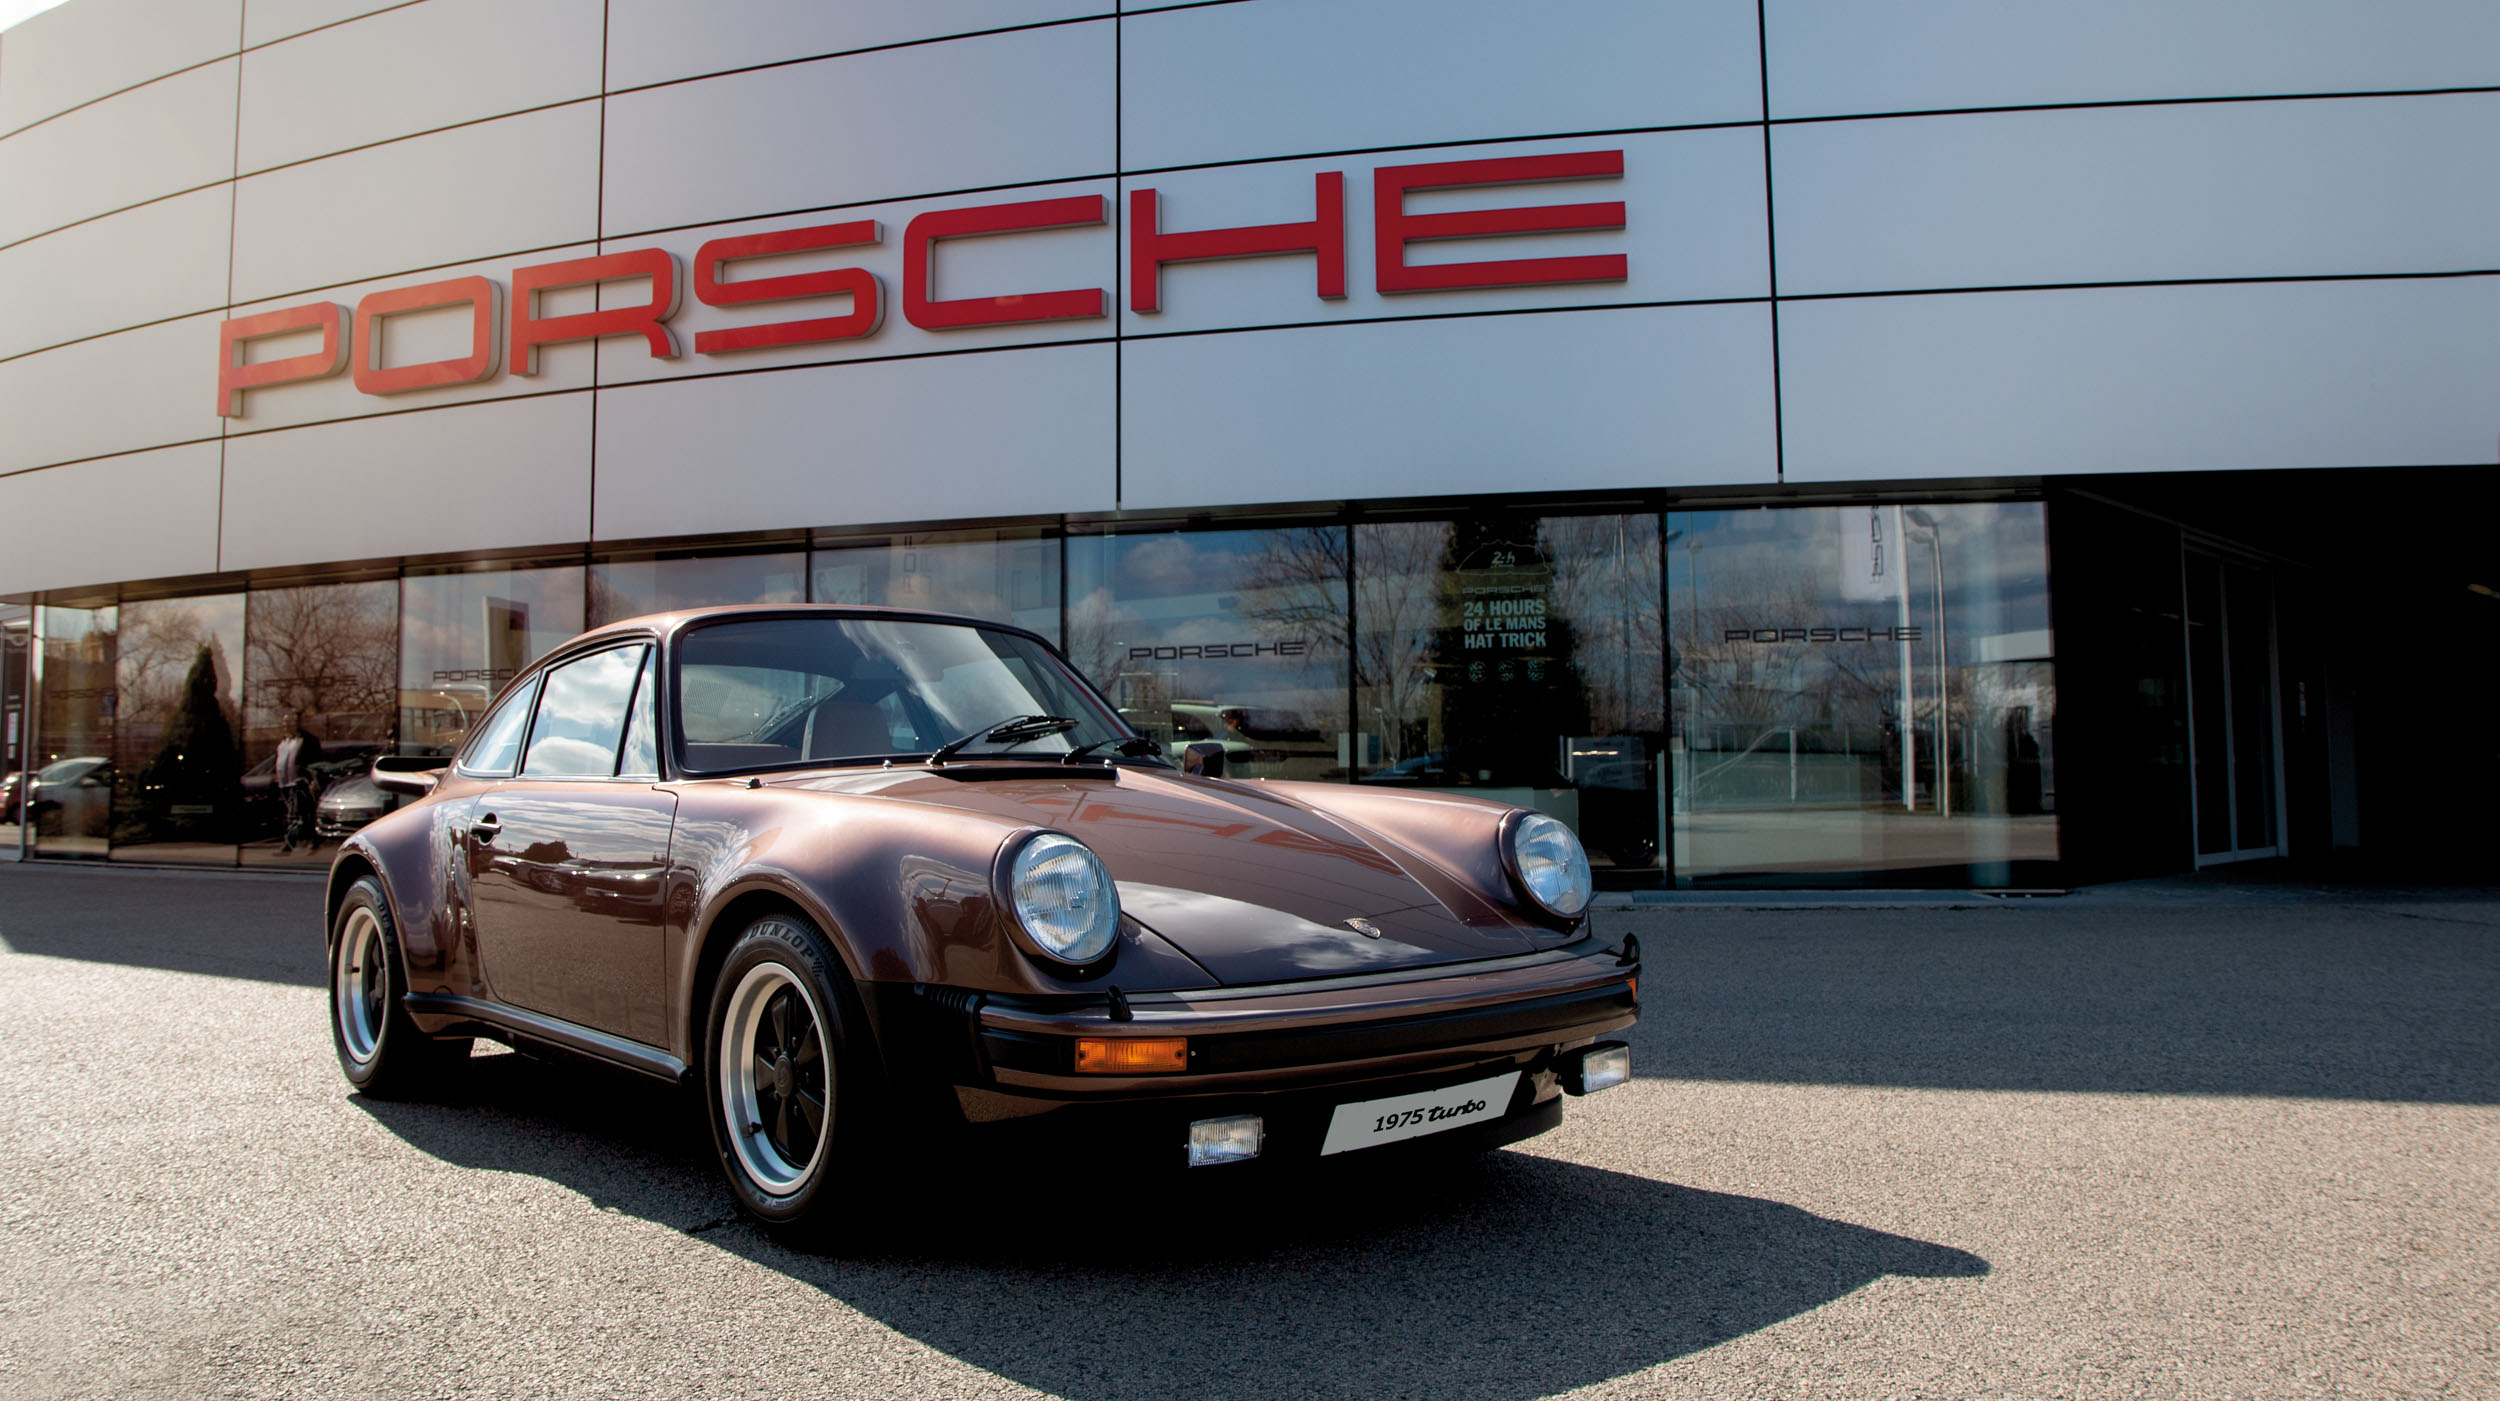 1975 Porsche 911 Turbo Carrera (Credit – Reka Szorenyi ©2020 Courtesy of RM Sotheby's) (6)